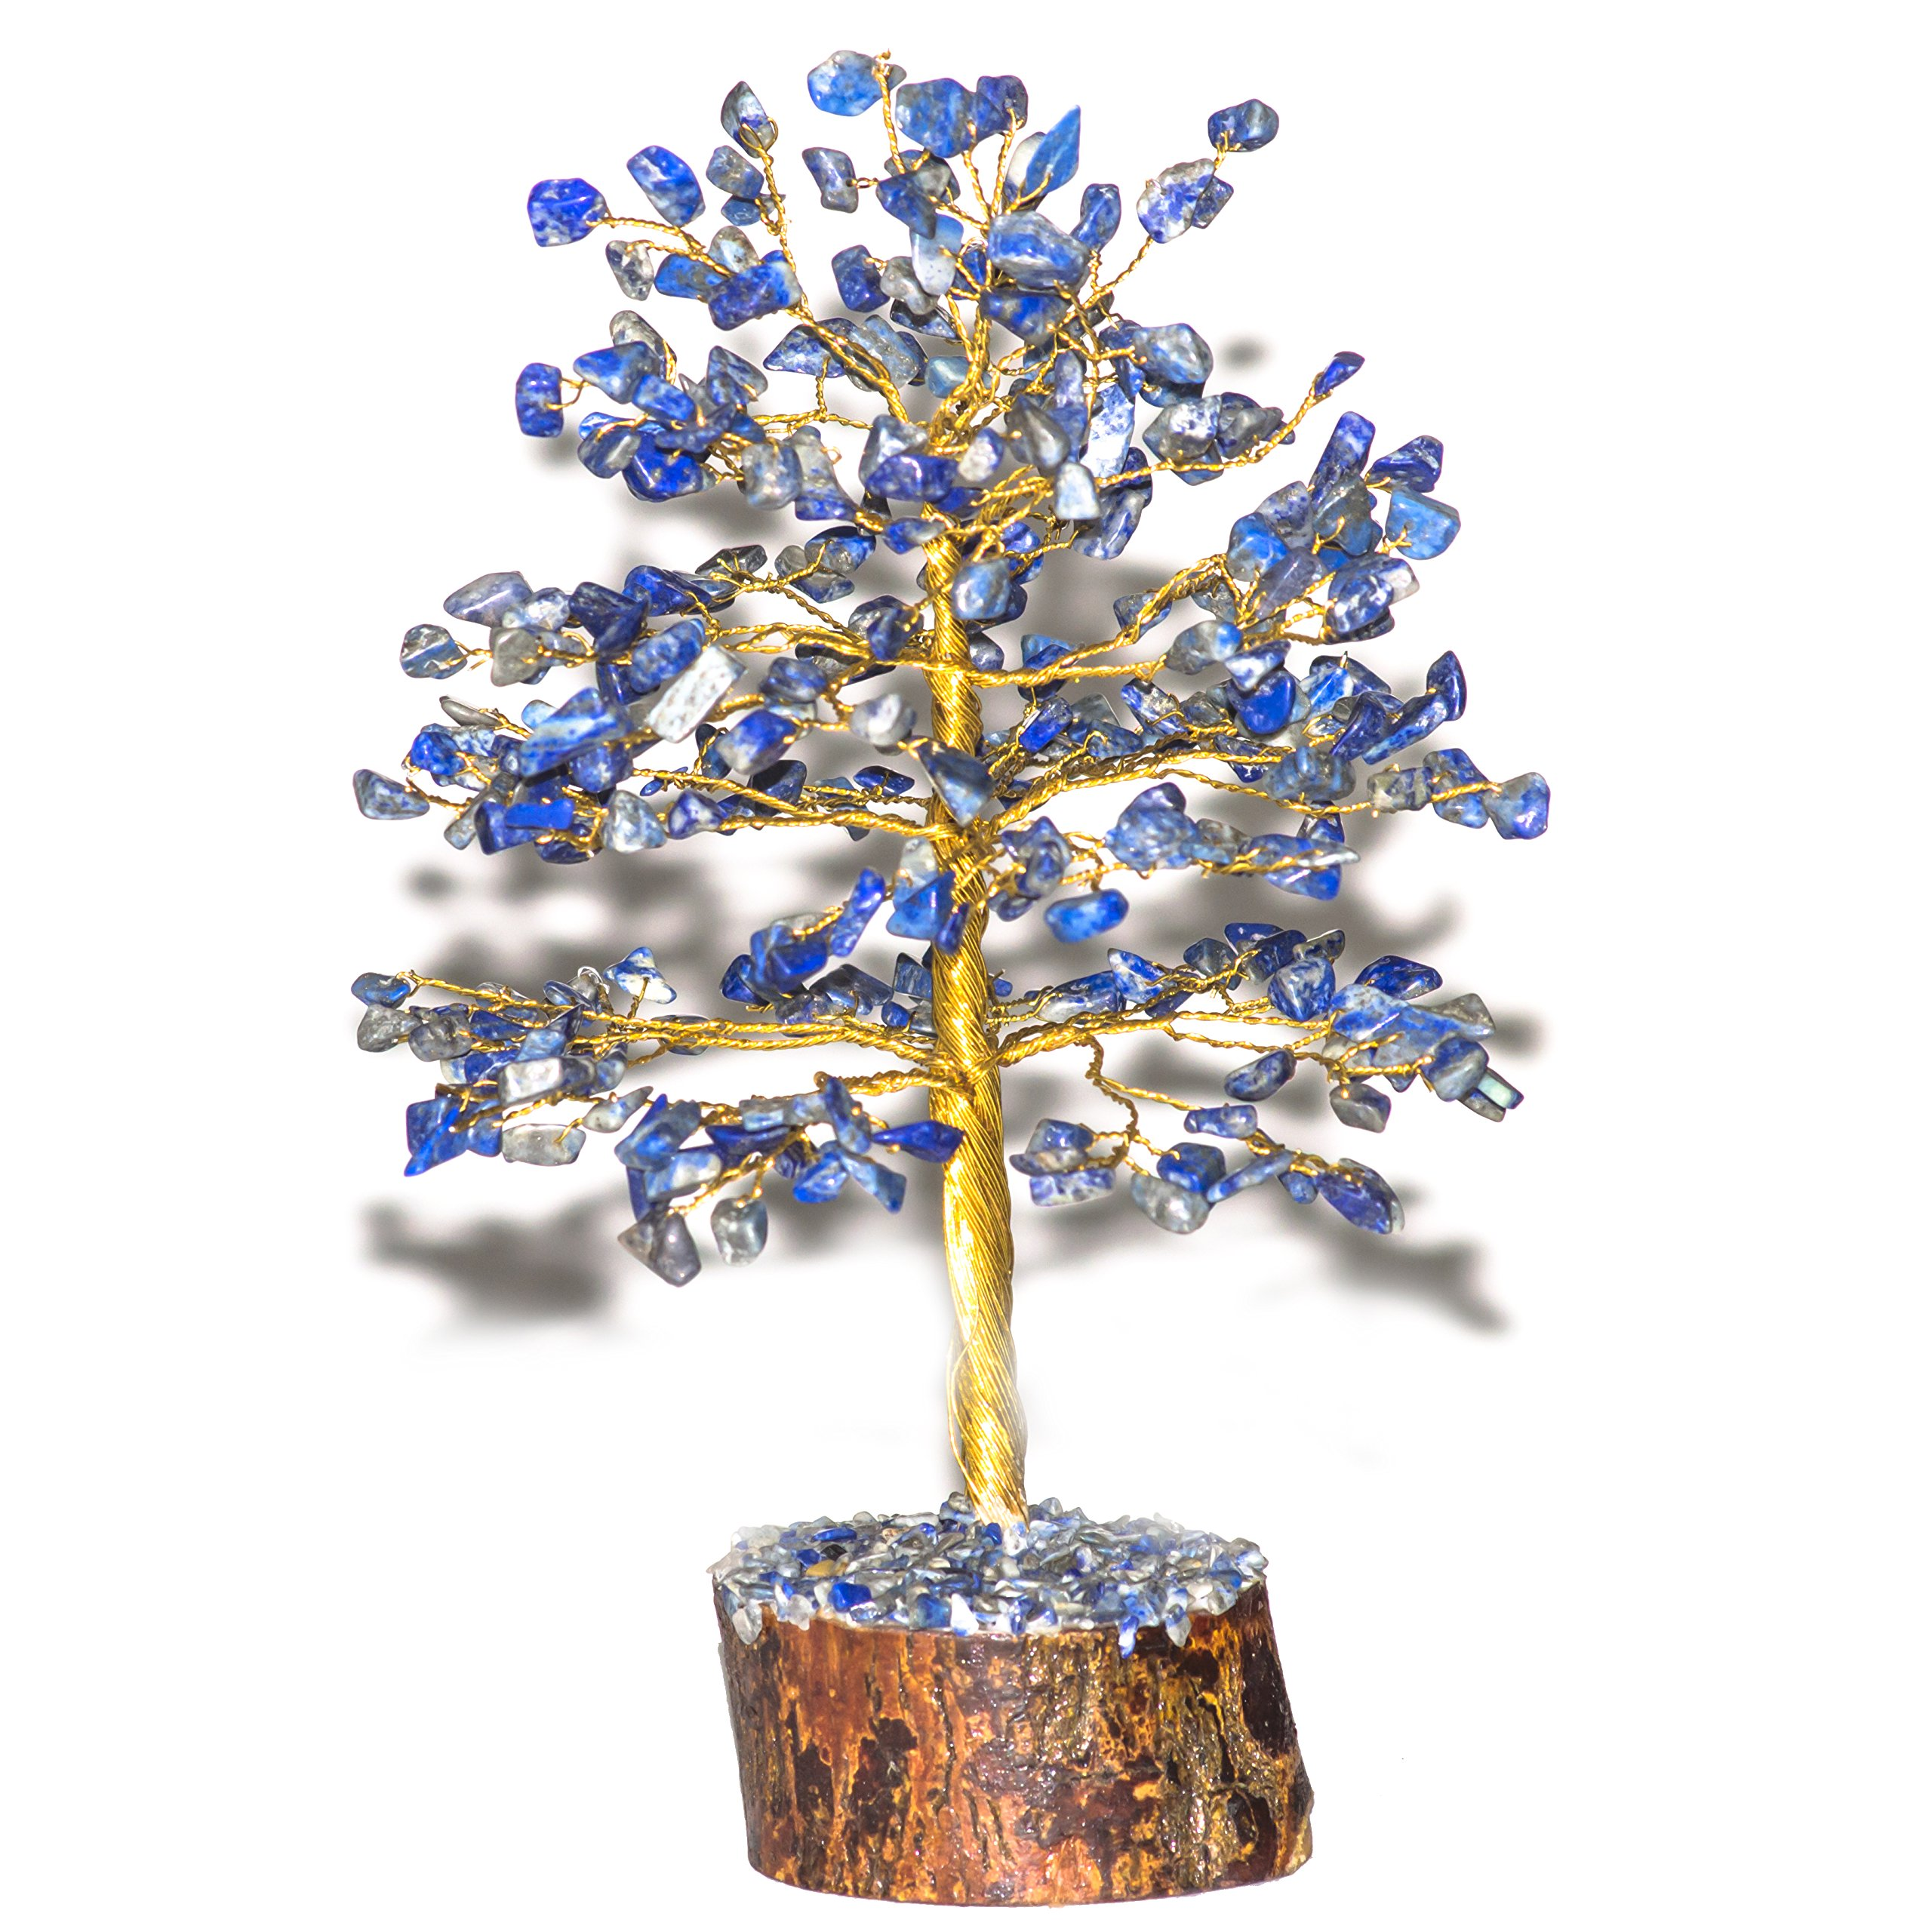 Crocon Natural Color Healing Gemstone Crystal Bonsai Fortune Money Tree for Good Luck, Wealth & Prosperity Spiritual Gift Size-10 INCH (Golden Wire) (Lapis Lazuli)